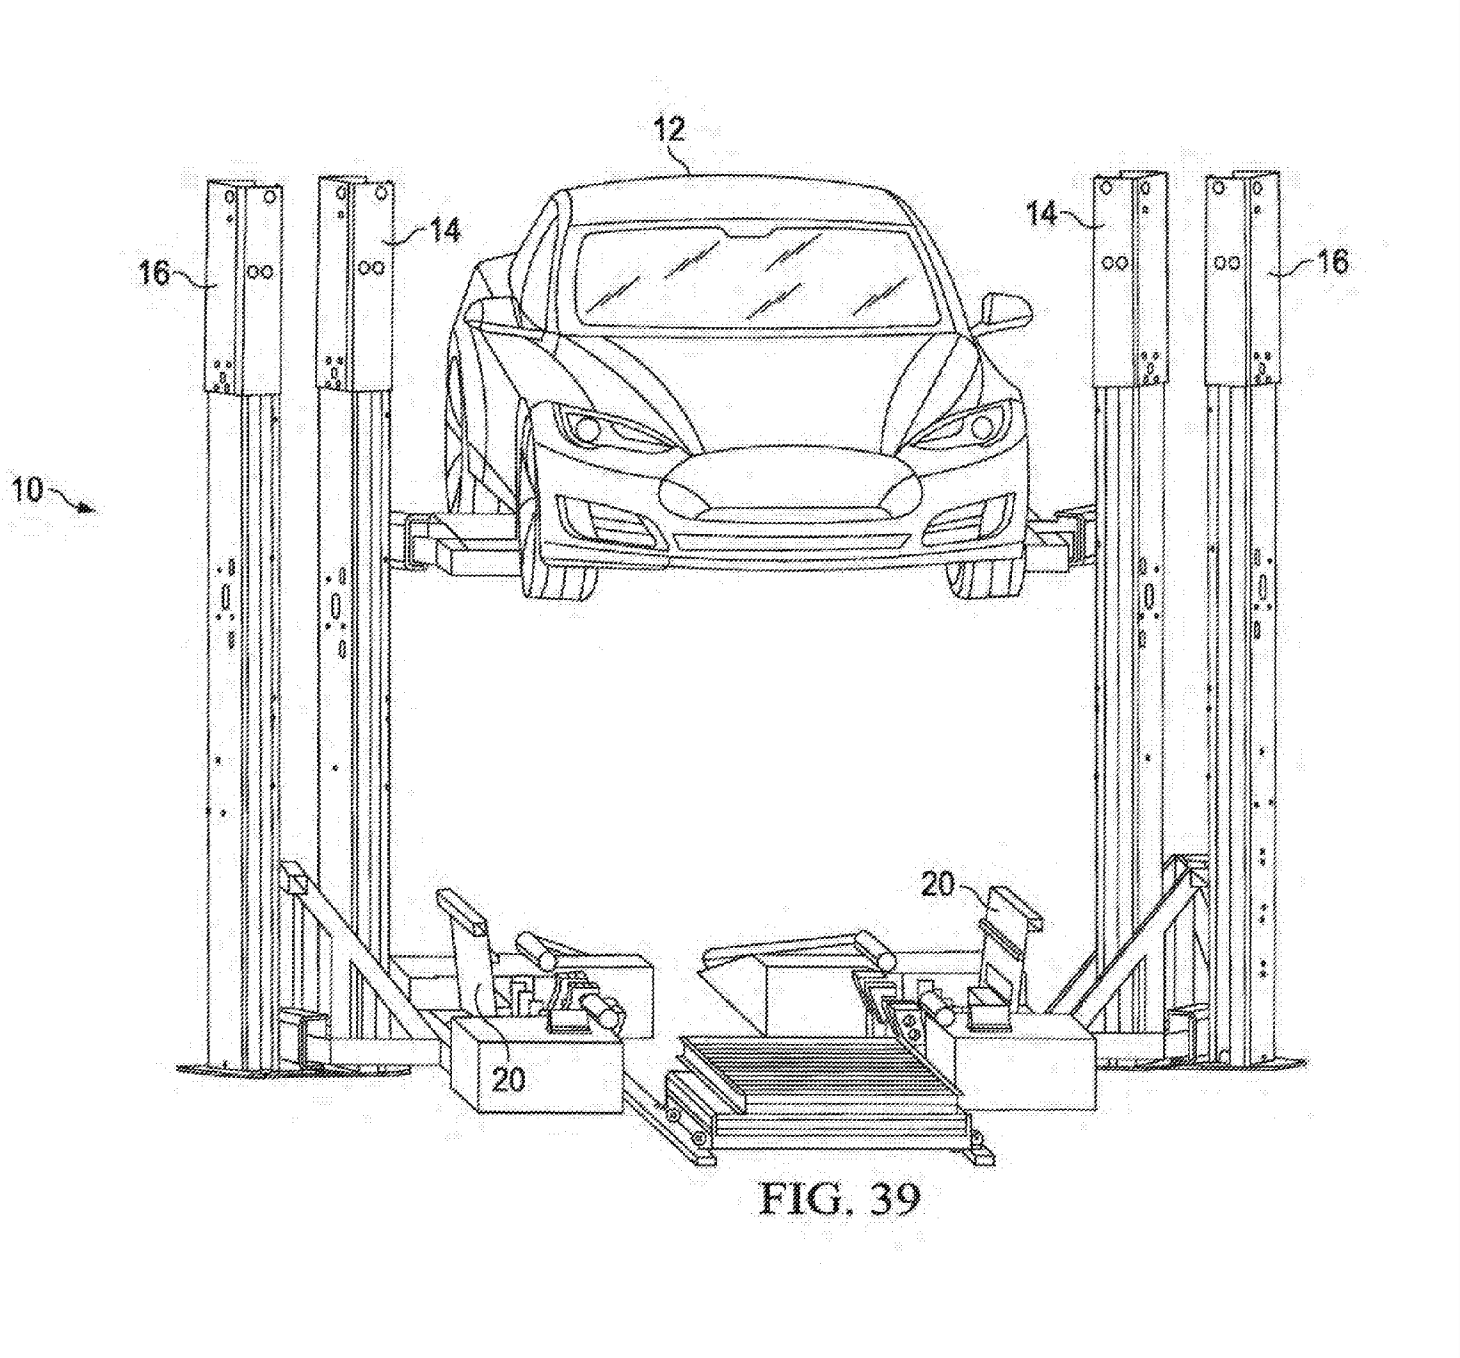 Tesla Is Working On A New Mobile Battery Swap Technology To Deploy Motor Design Diagram Pics Here Are Few Drawings From The Patent Application Released Yesterday